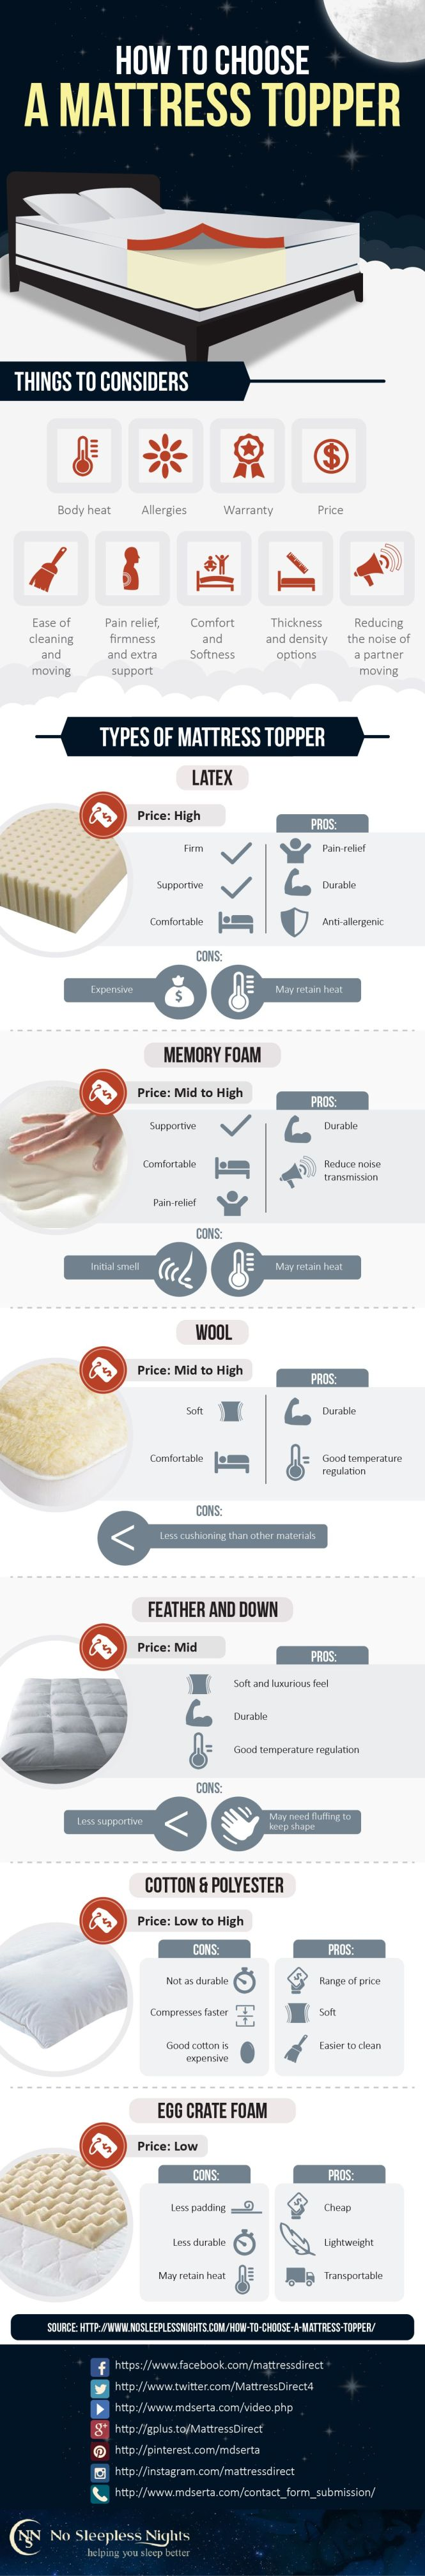 Find This Pin And More On Mattress Direct Infographic By Mdserta3 How To Choose